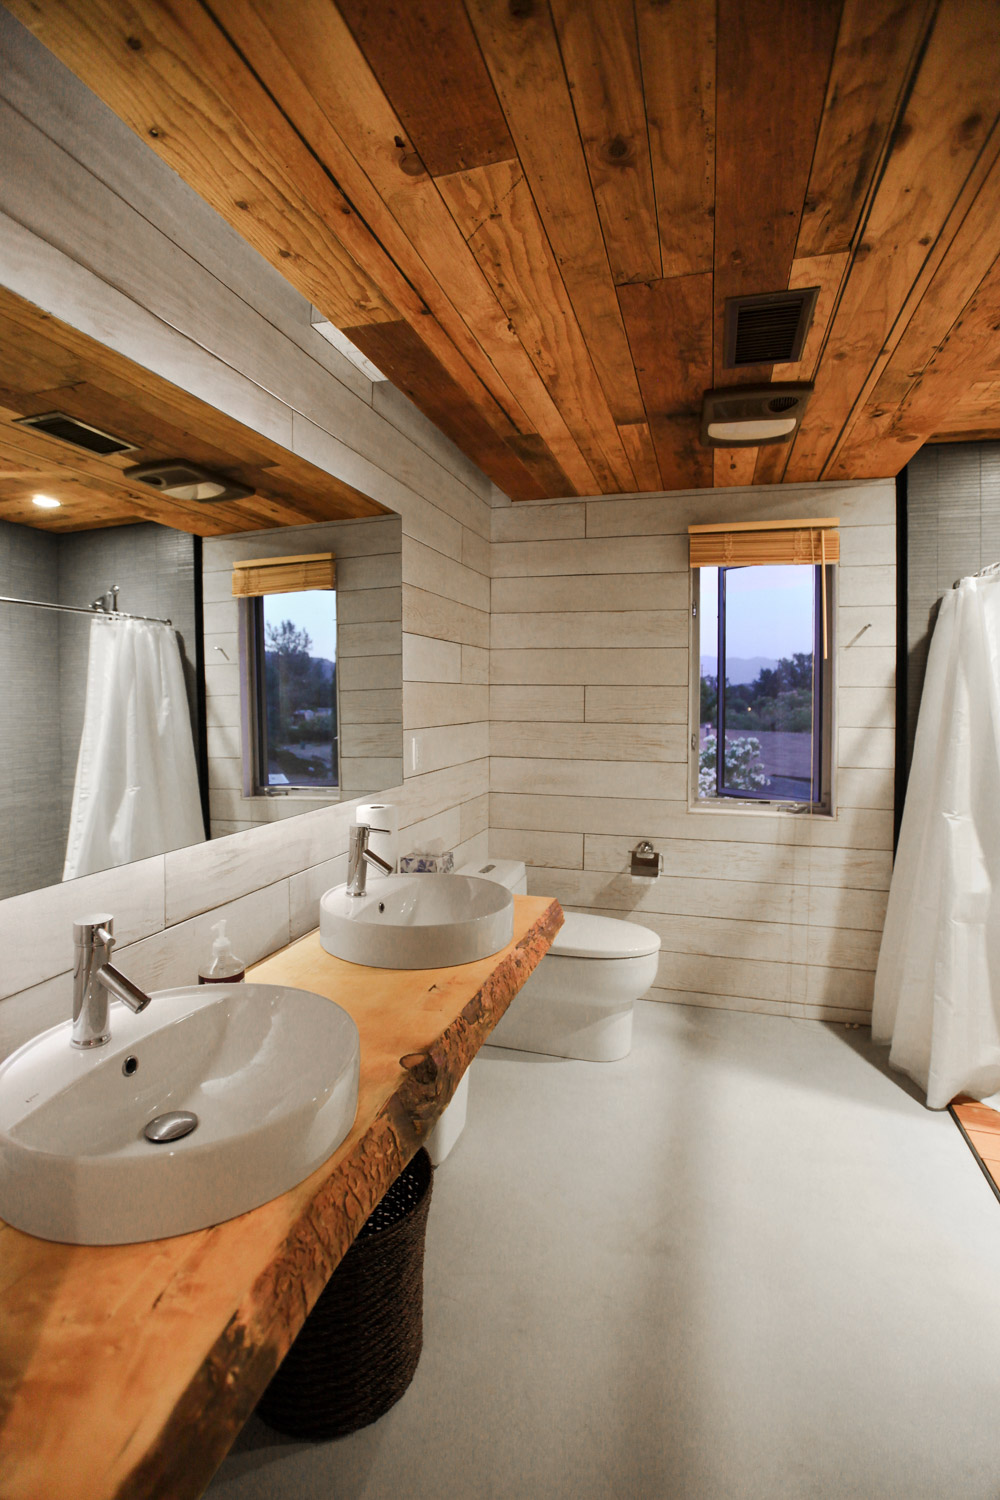 510 Cabin modern bathroom combines whitewash plywood with a reclaimed wood slab vanity sourced from a forest fire in Lake Arrowhead California. The ceilings are made from reclaimed structural plywood deconstructed from a demolished house in Los Angeles.